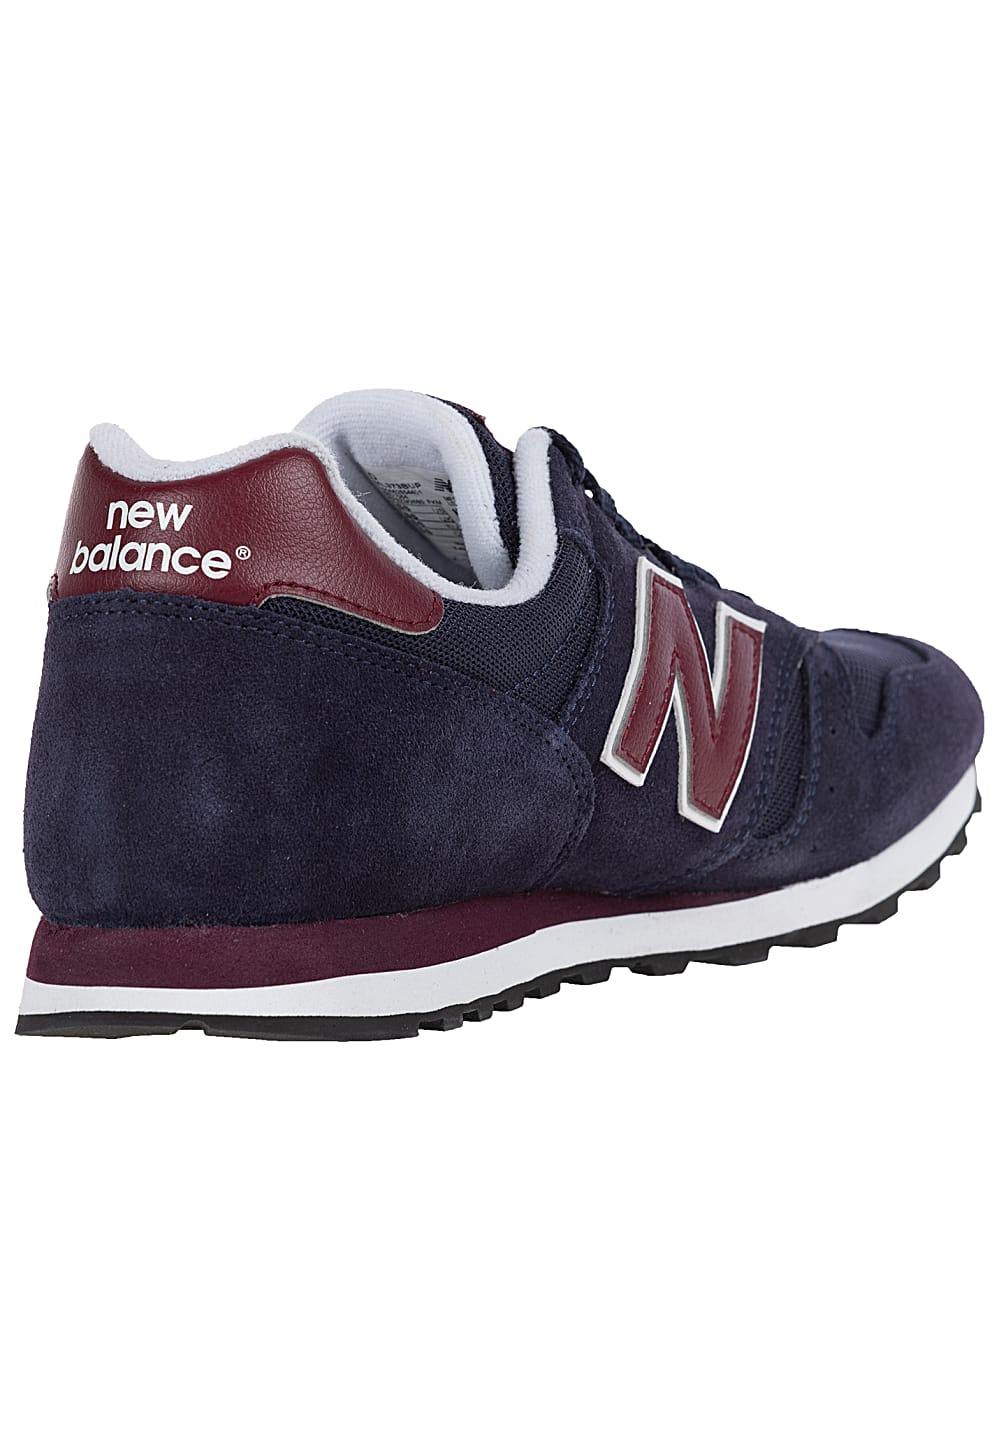 Price Reduction New Balance ML373 Trainers navy High quality